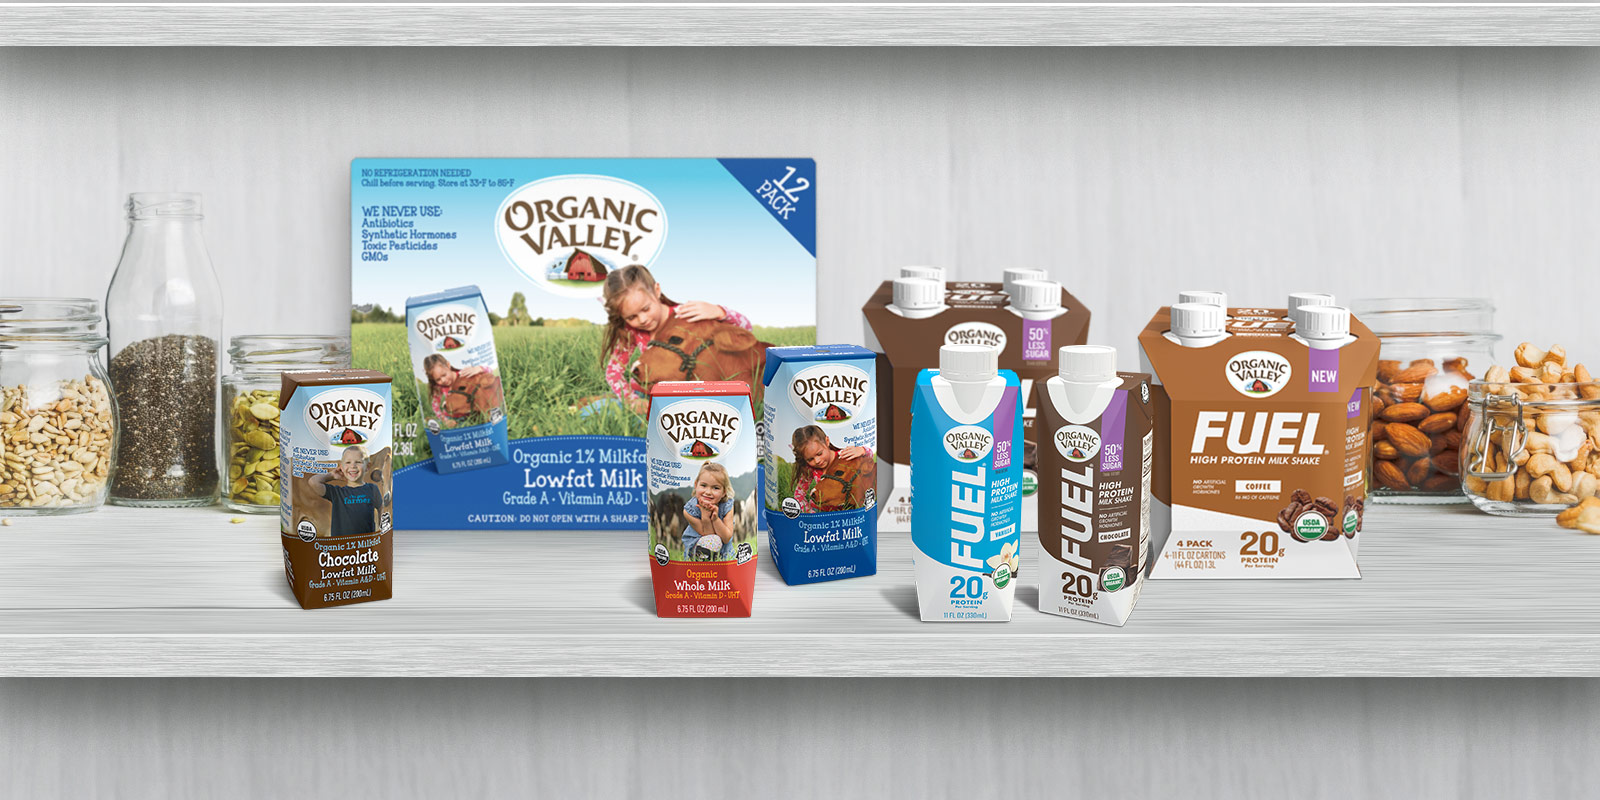 Packages of Organic Valley shelf-stable products displayed on a wooden table.